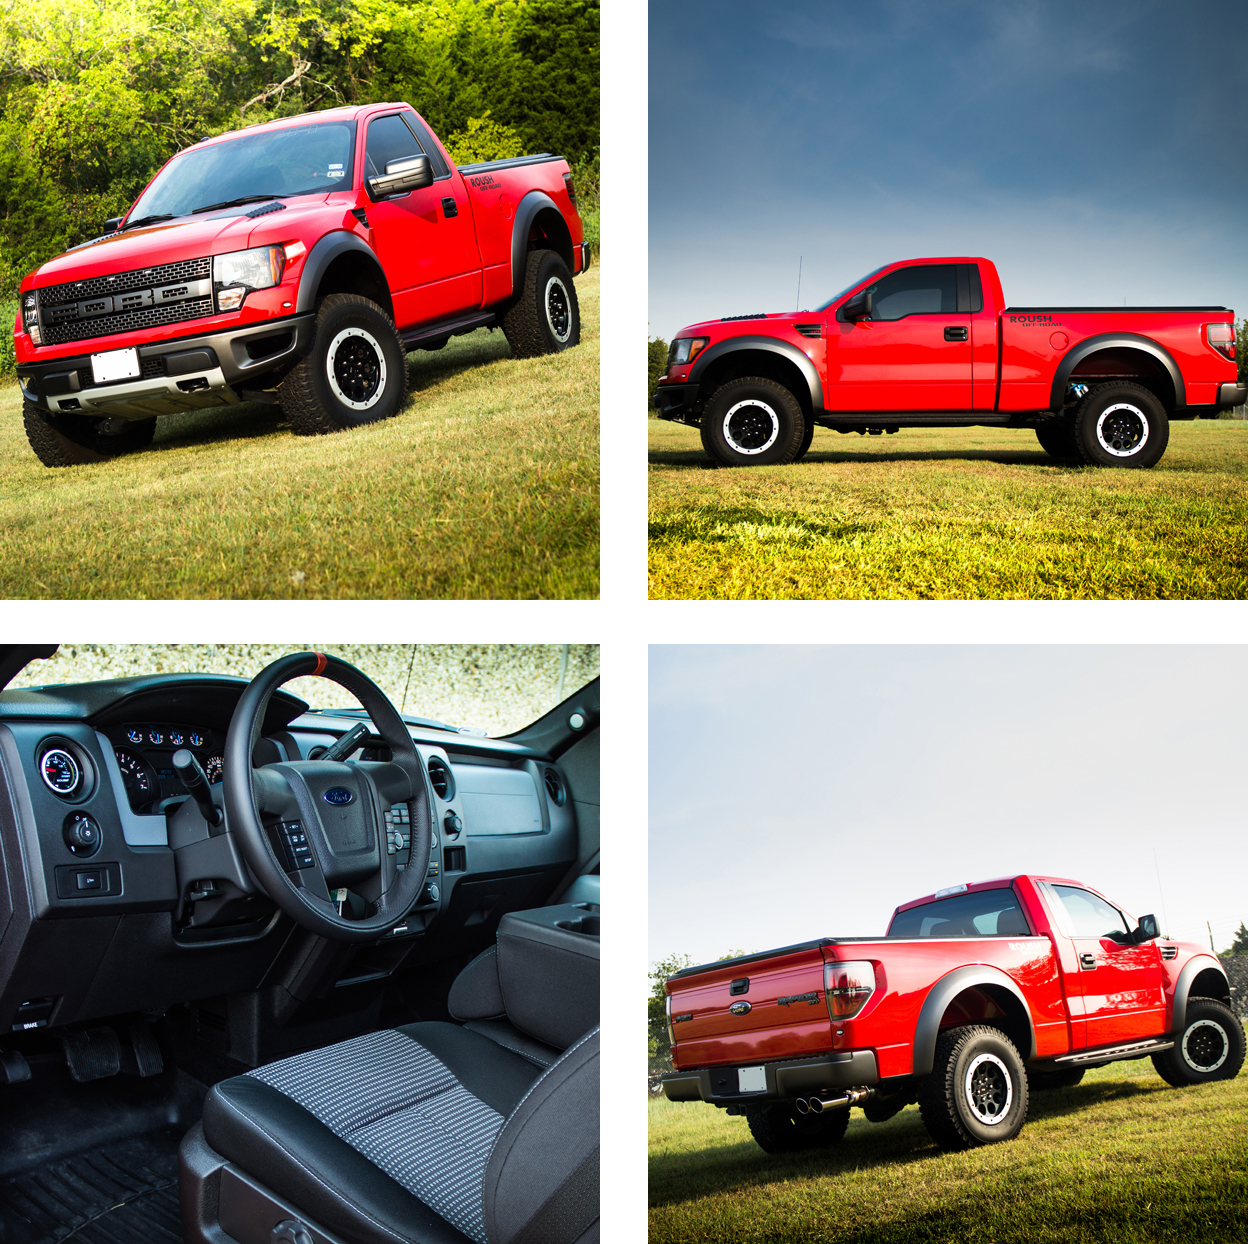 2014 F150 Single Cab Raptor Conversion - 2014 F150 Single Cab Raptor Conversion